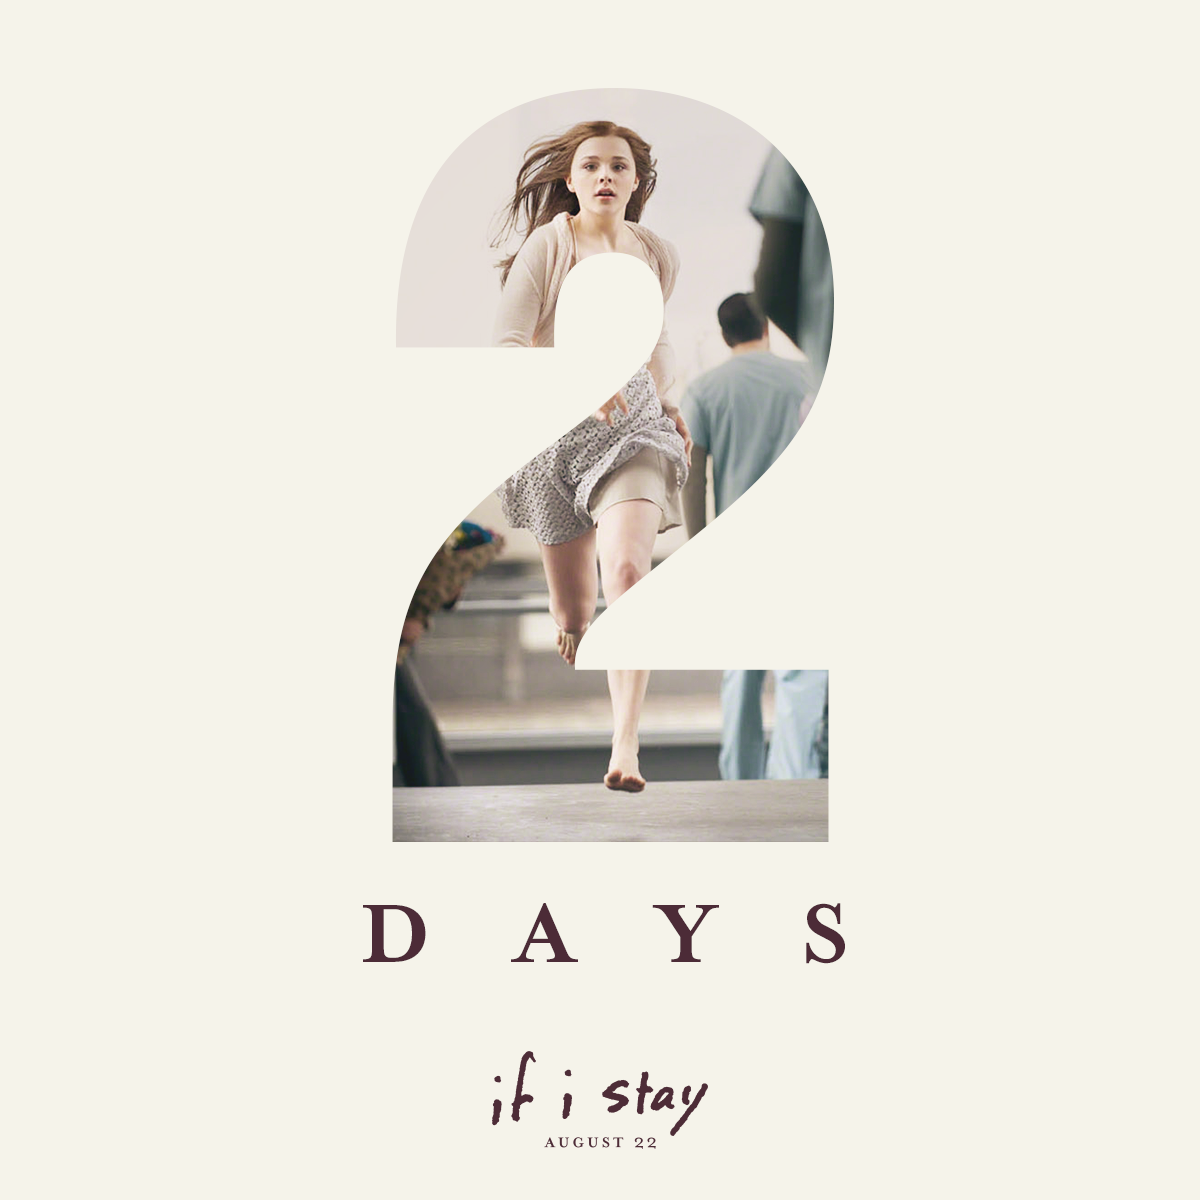 Friends, family, tissues, waterproof mascara. Do you have your If I Stay kit ready? http://bit.ly/STAYtix